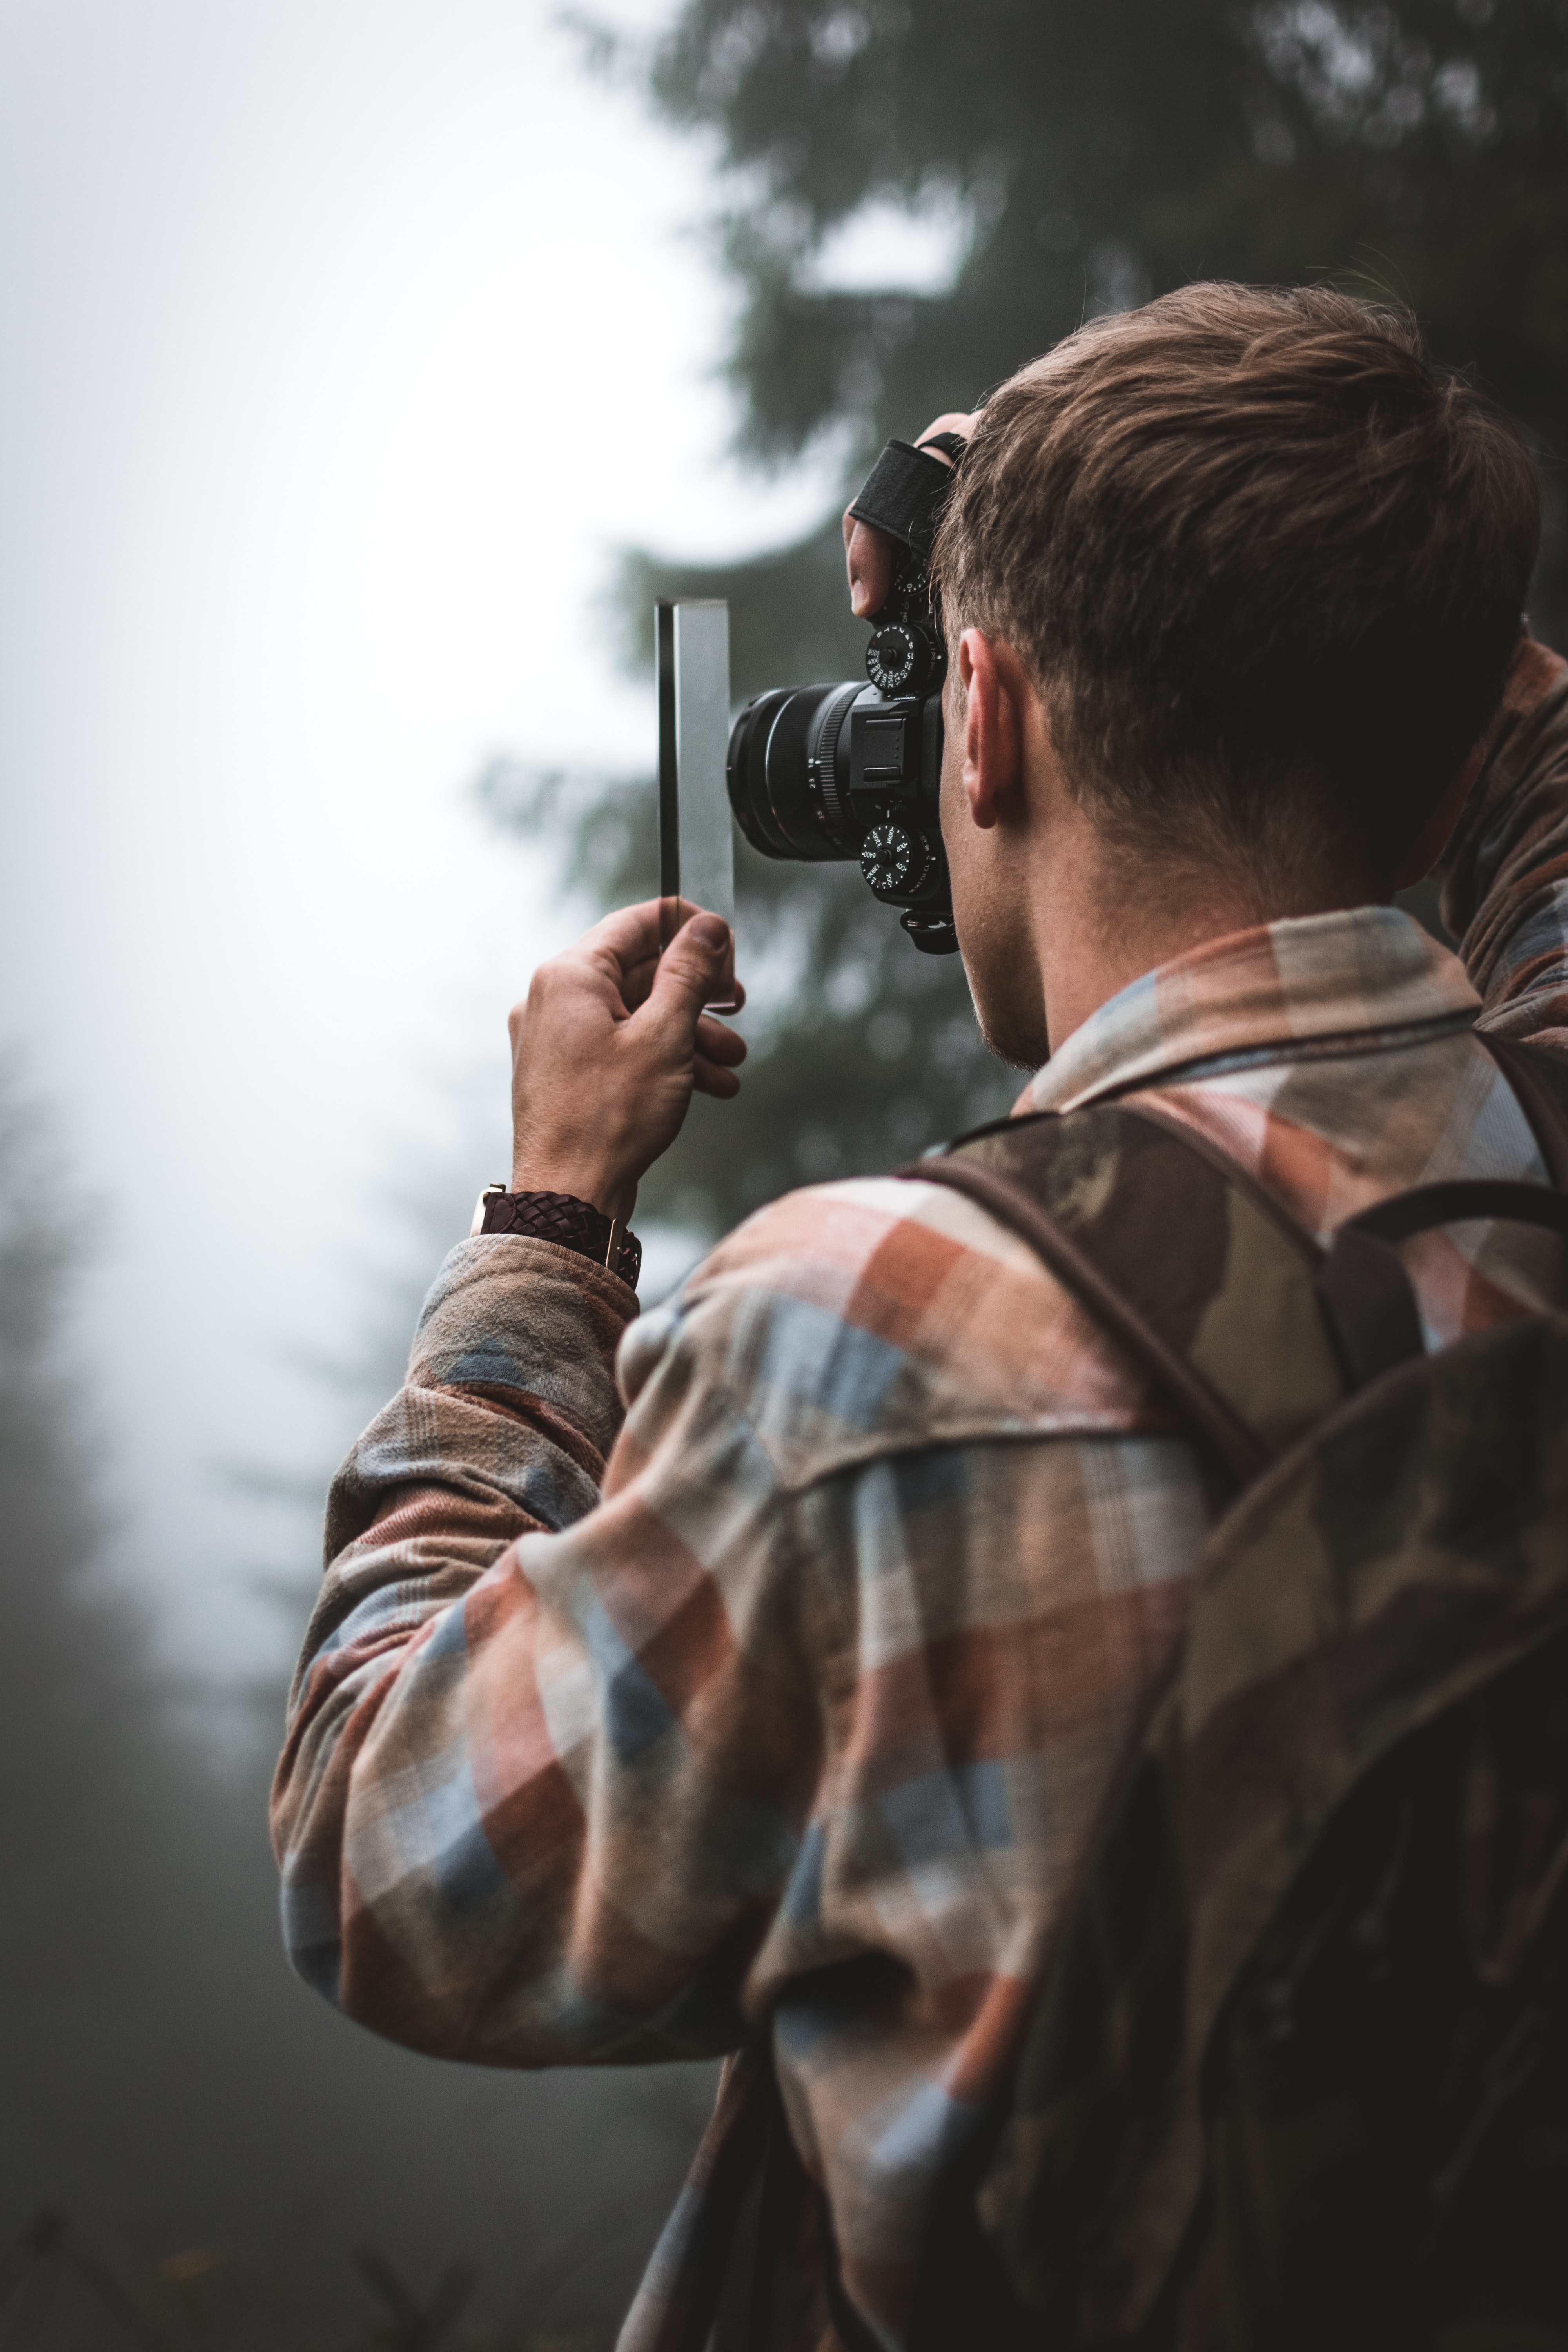 man taking photography outdoors